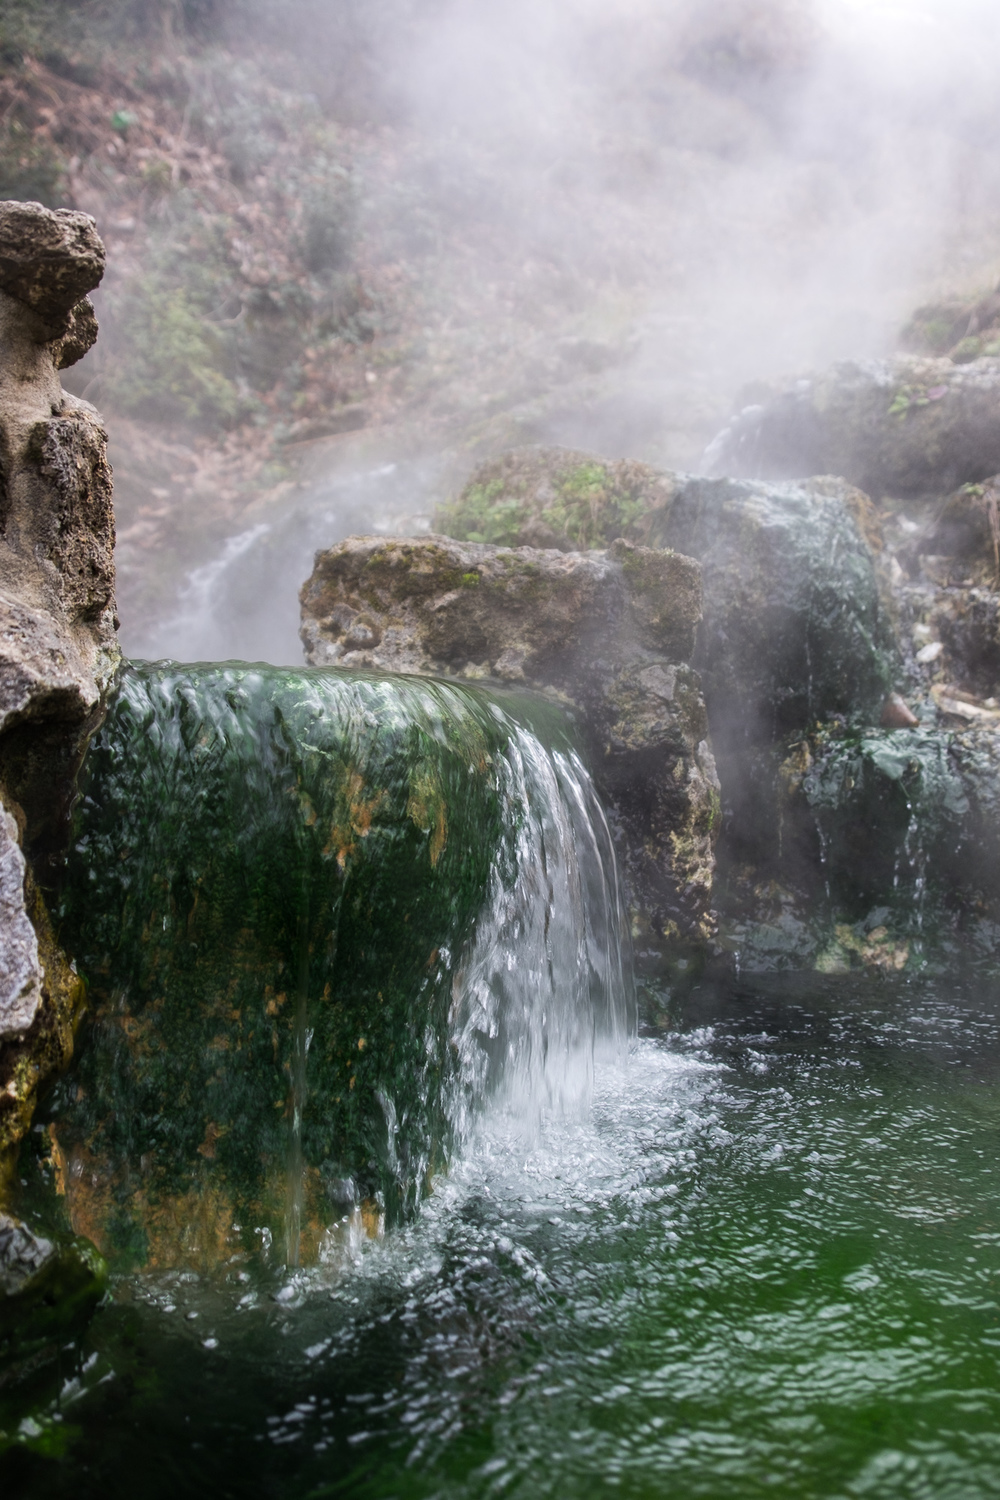 meet hot springs national park singles With its incredible range of precipitation and elevation, diversity is the hallmark of olympic national park encompassing nearly a million acres, the park protects a.